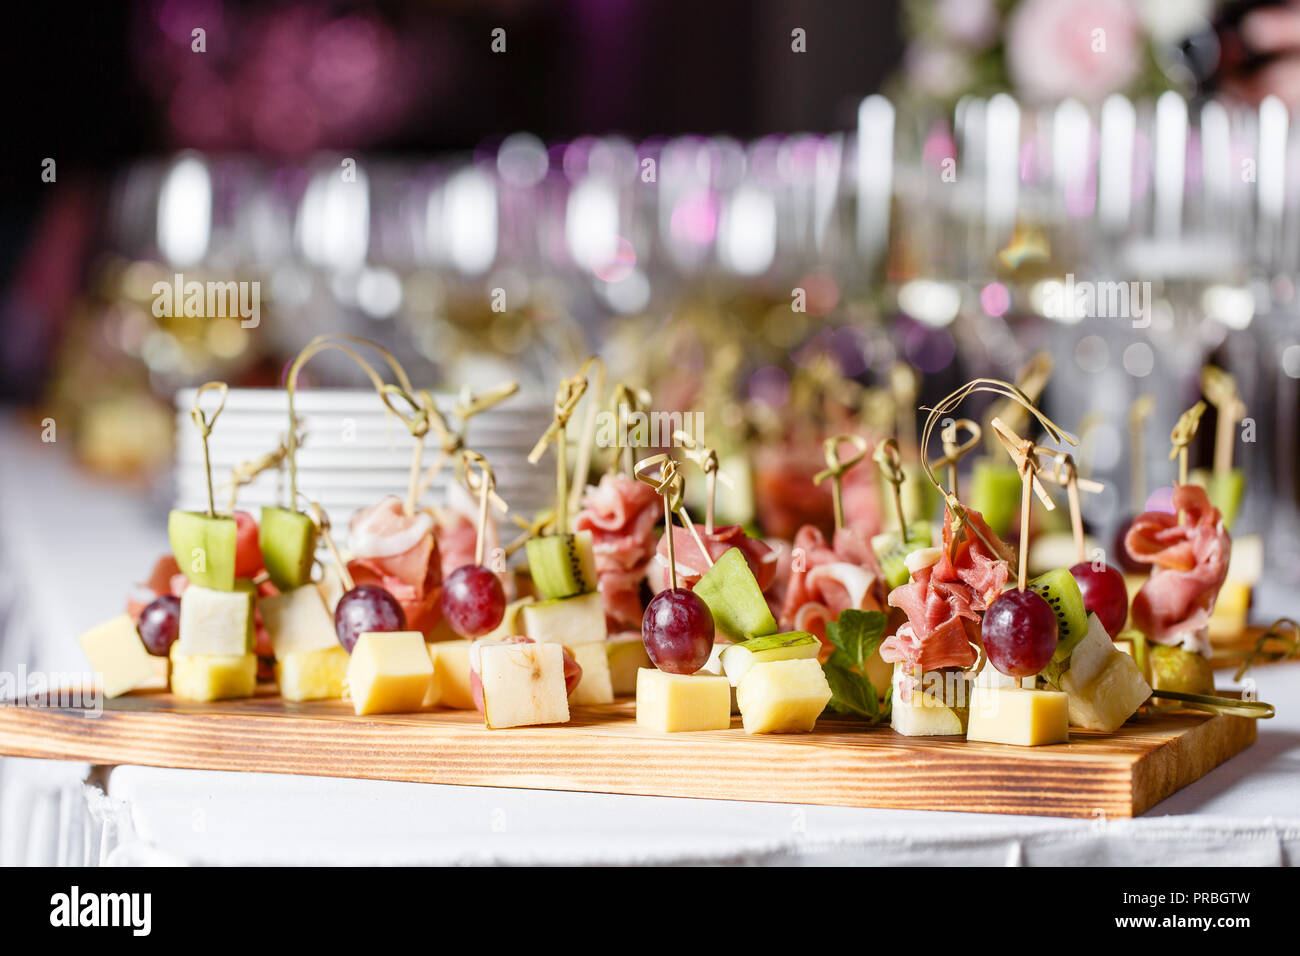 the buffet at the reception. Glasses of wine and champagne. Assortment of canapes on wooden board. Banquet service. catering food, snacks with cheese, jamon, prosciutto and fruit - Stock Image